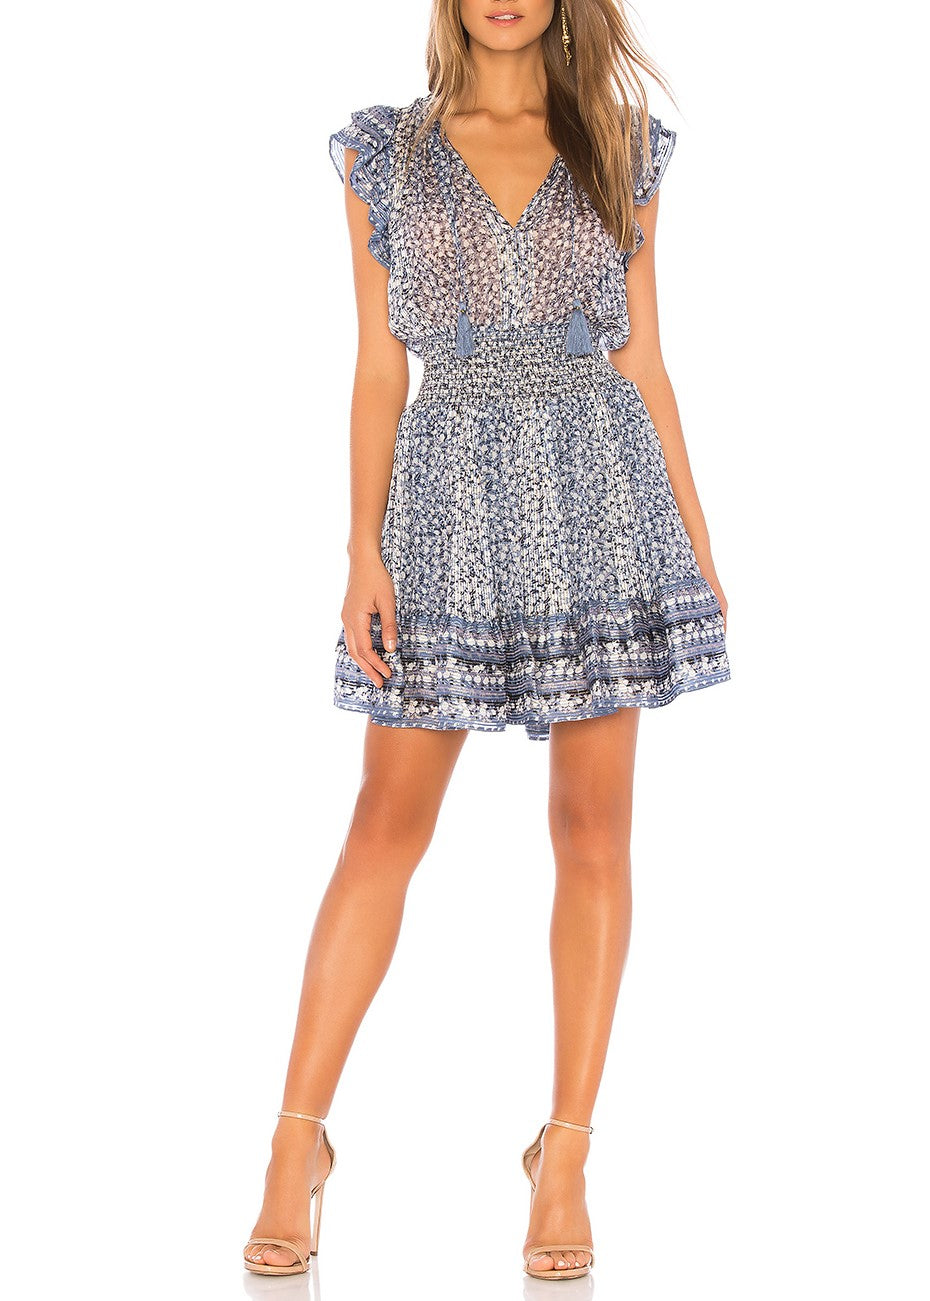 Ulla Johnson Nyssa dress in sky